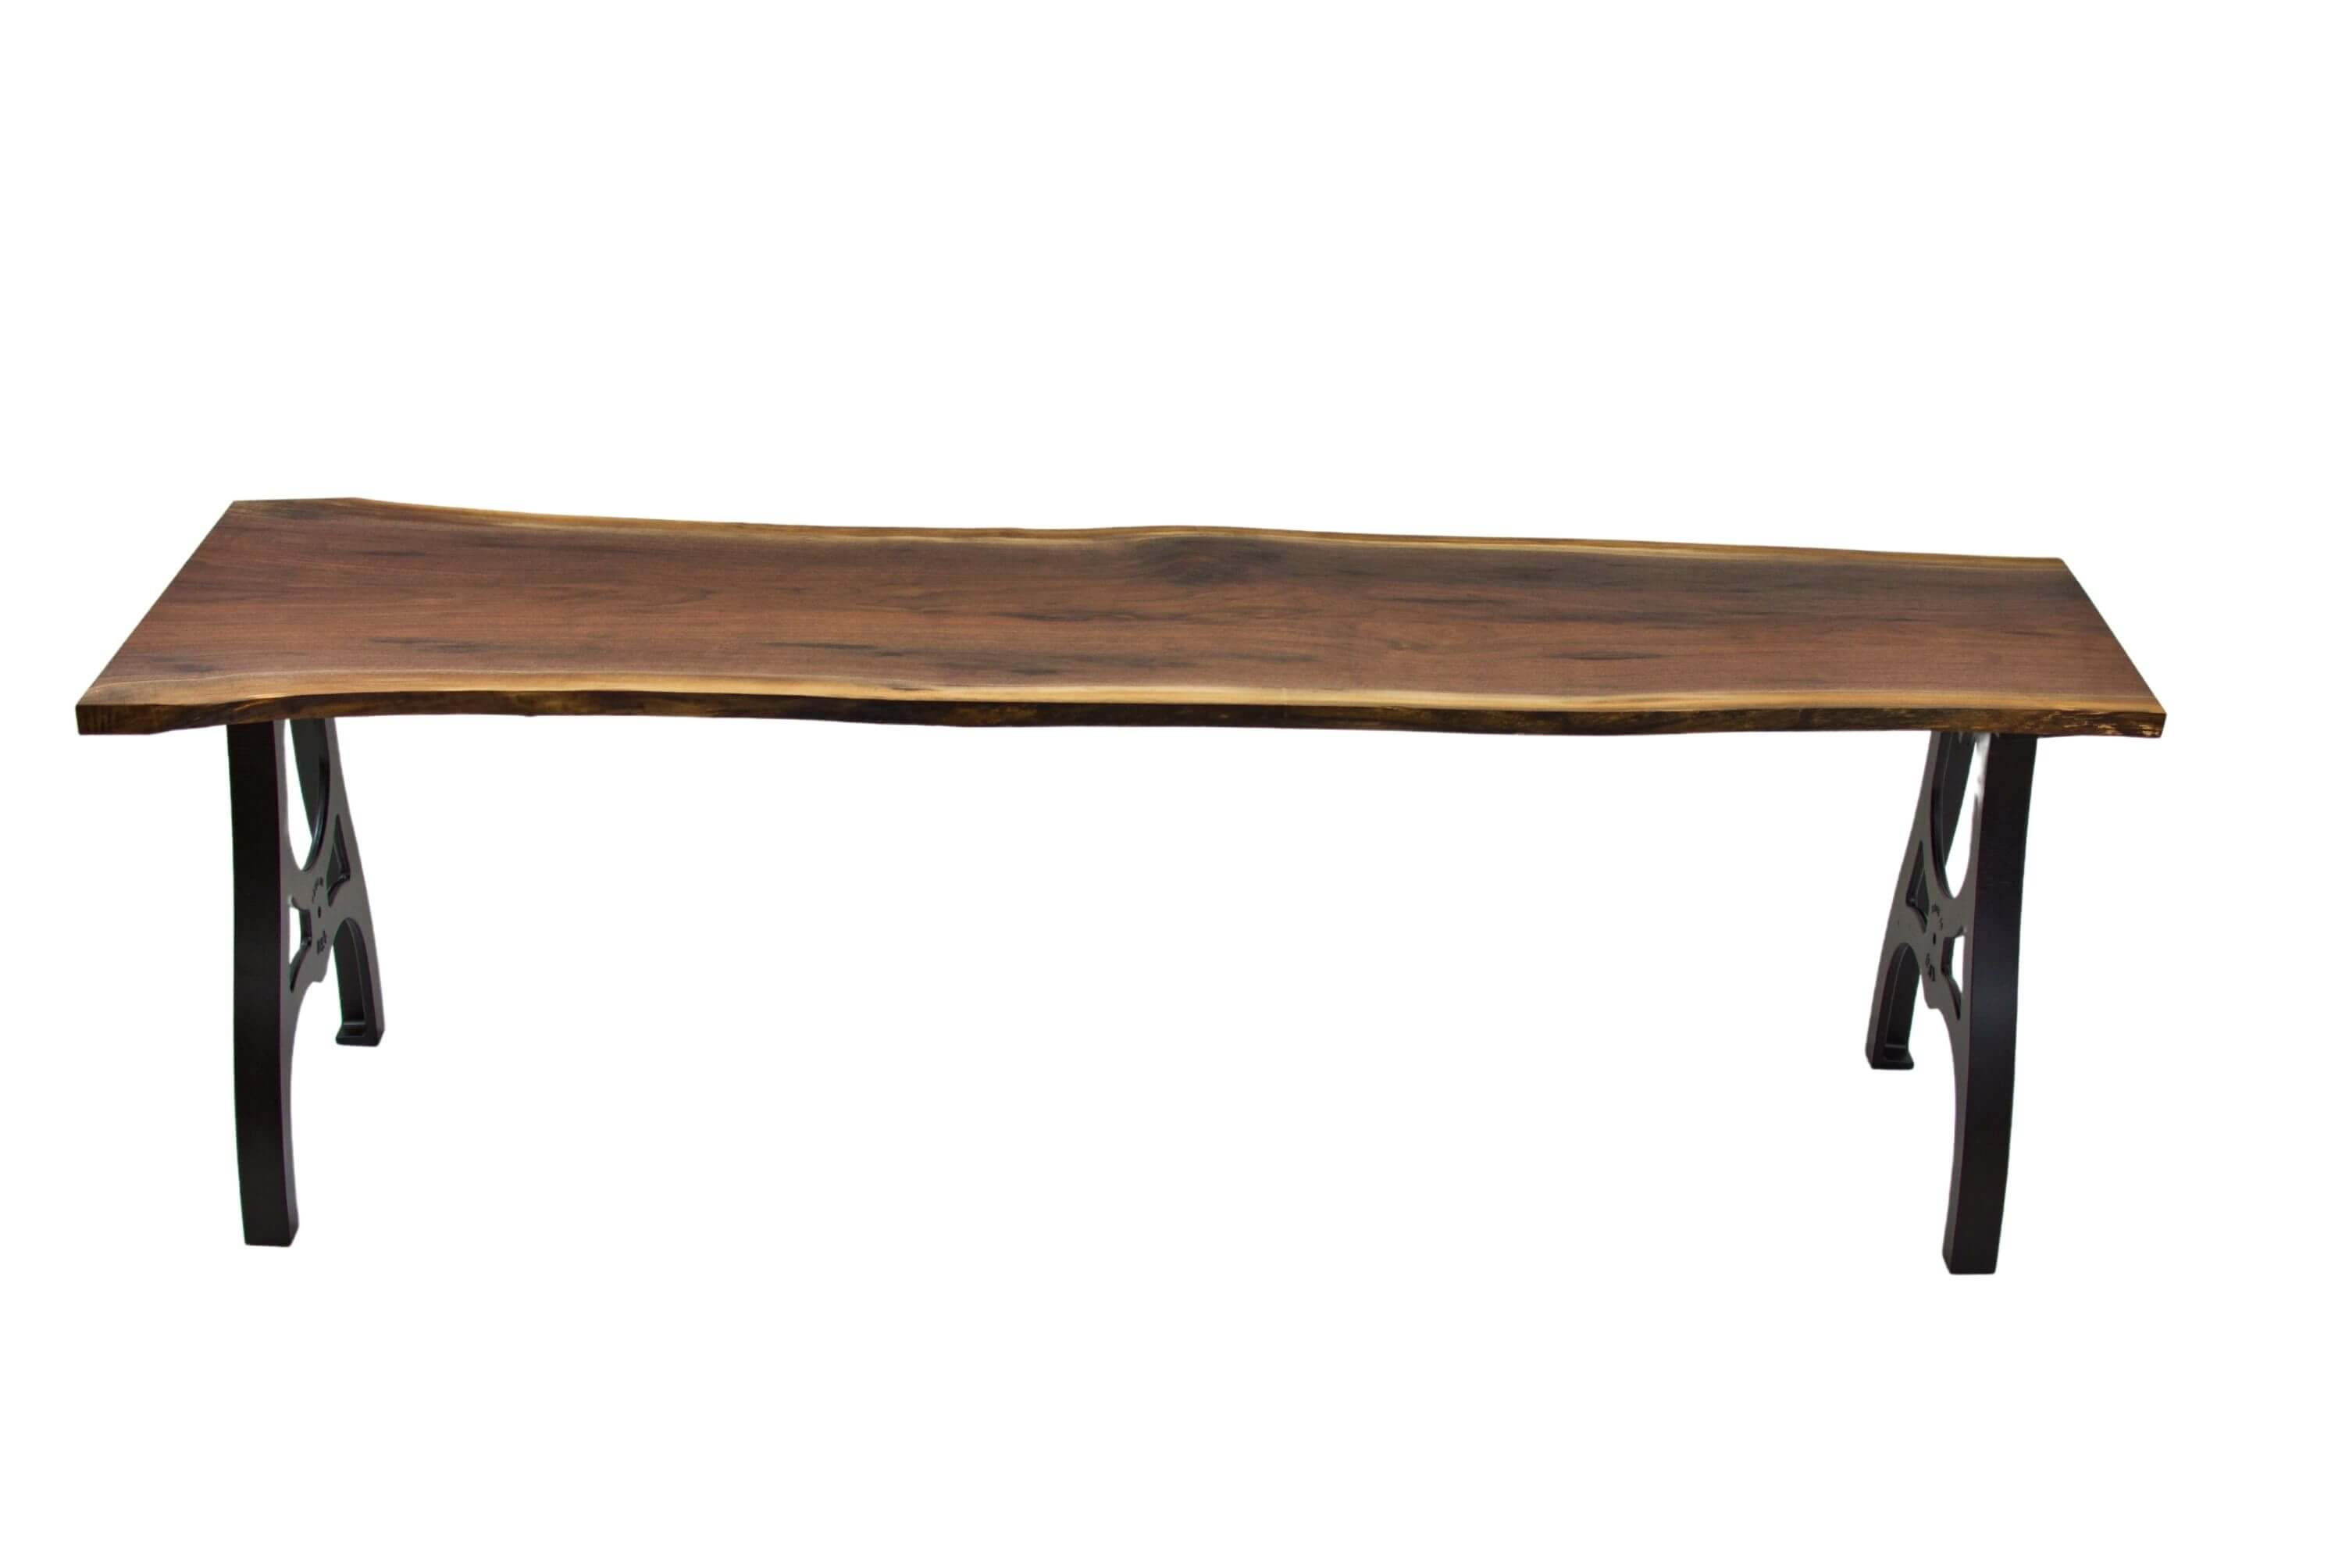 Full view of live edge walnut table finished with Rubio Monocoat products.